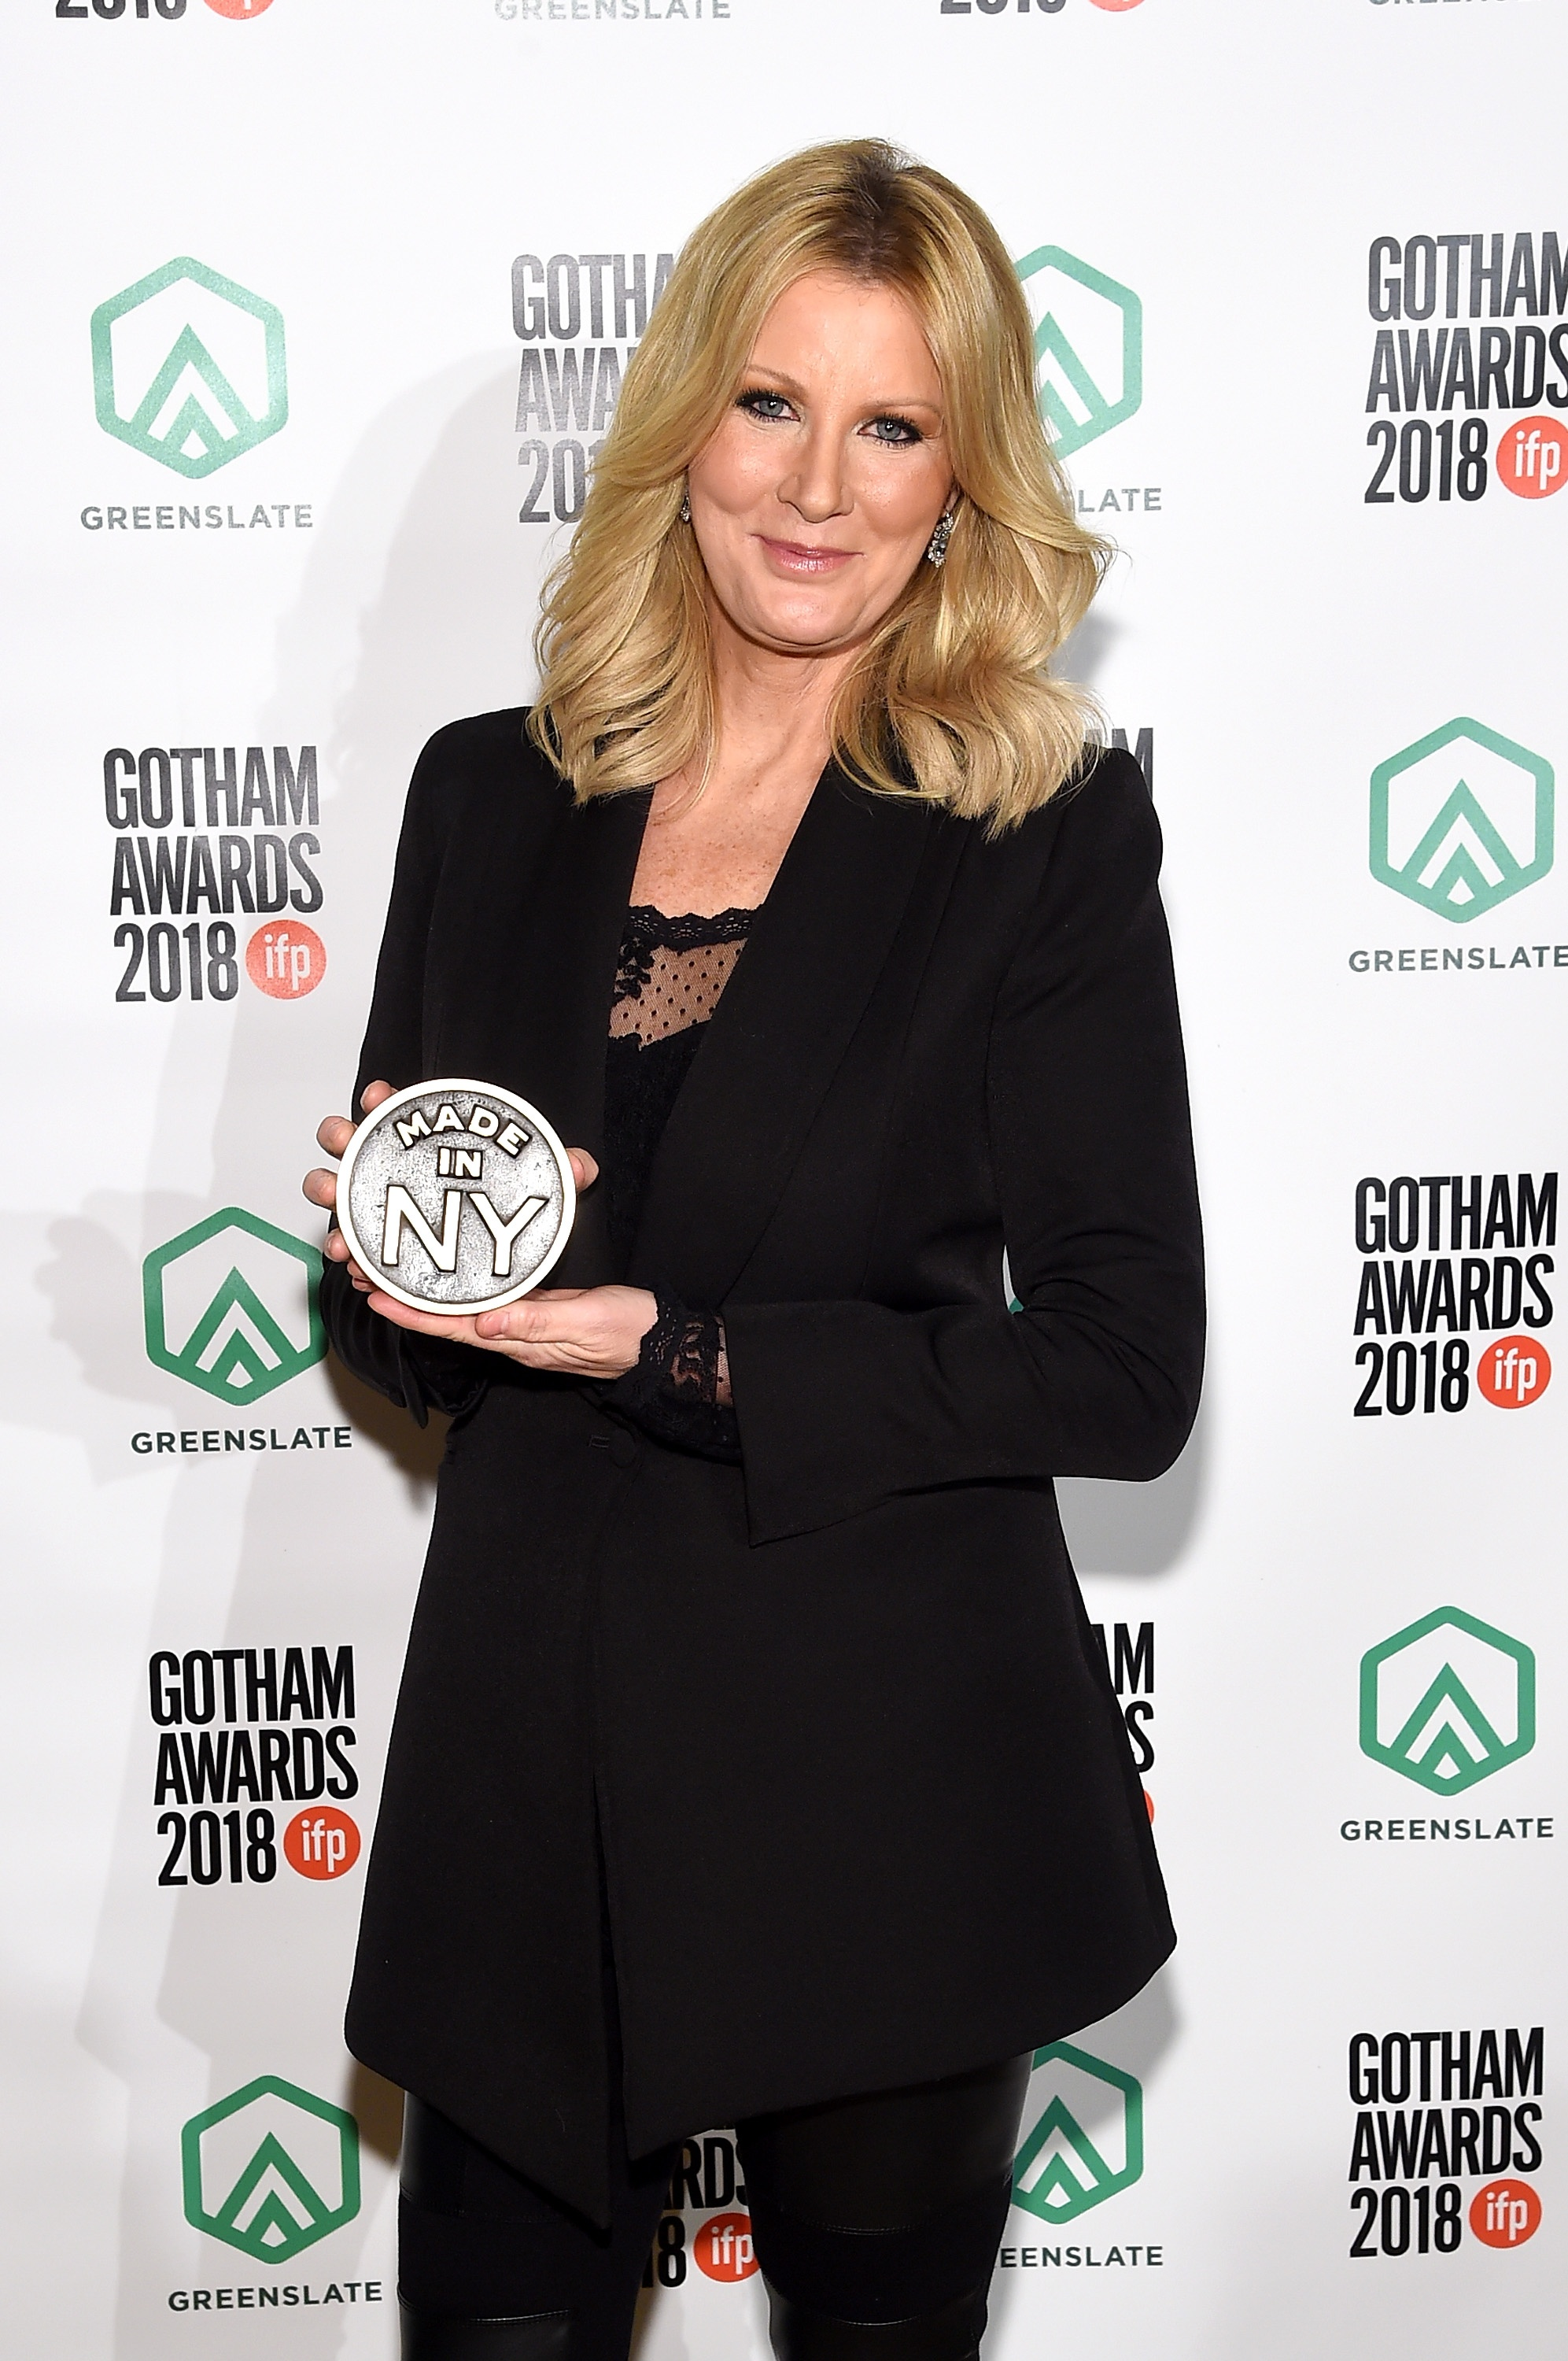 Sandra Lee backstage in the GreenSlate Greenroom during IFP's 28th Annual Gotham Independent Film Awards at Cipriani, Wall Street on November 26, 2018 in New York City.